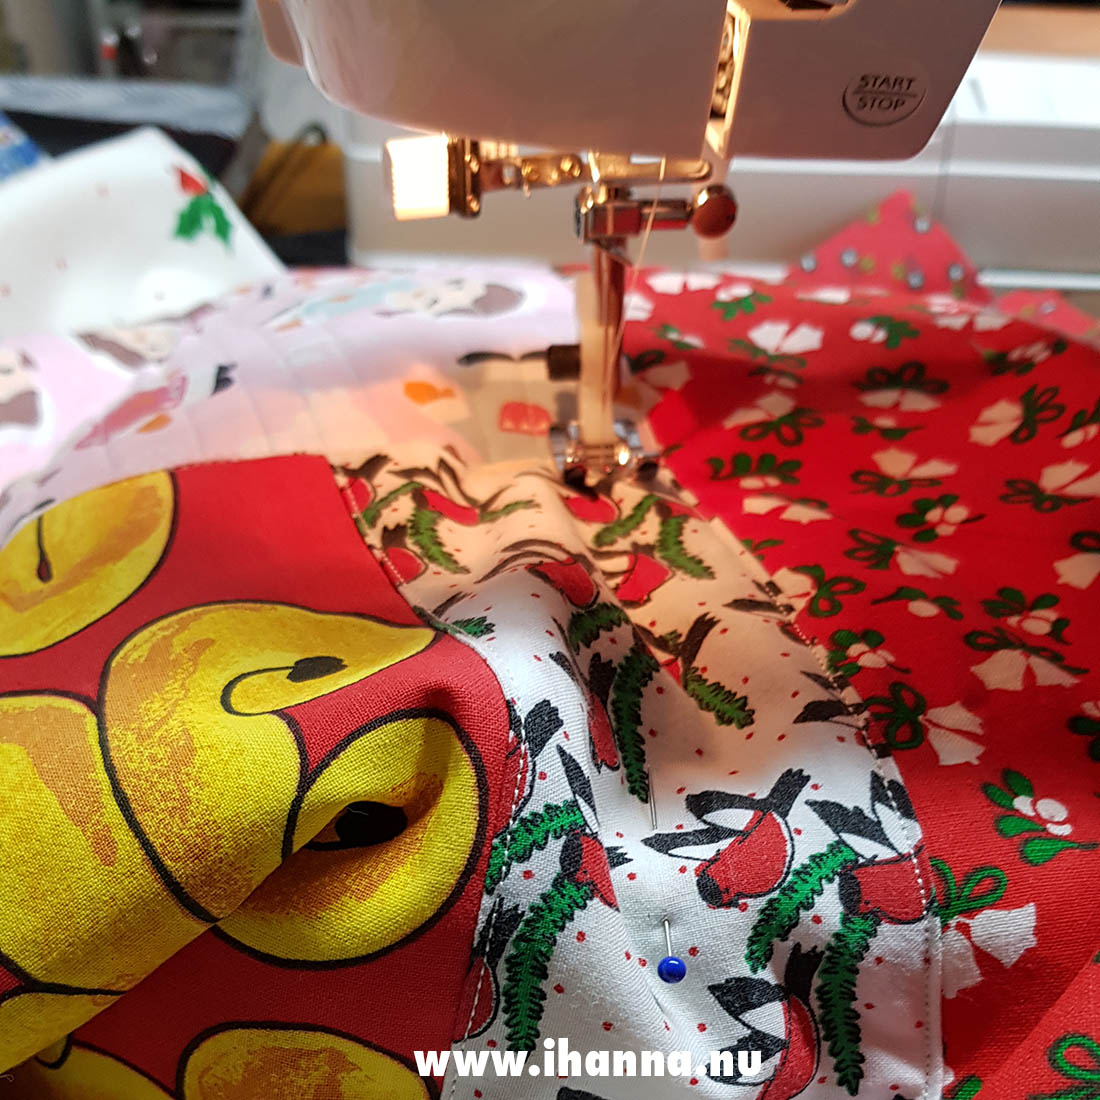 Sewing a Christmas table runner for myself